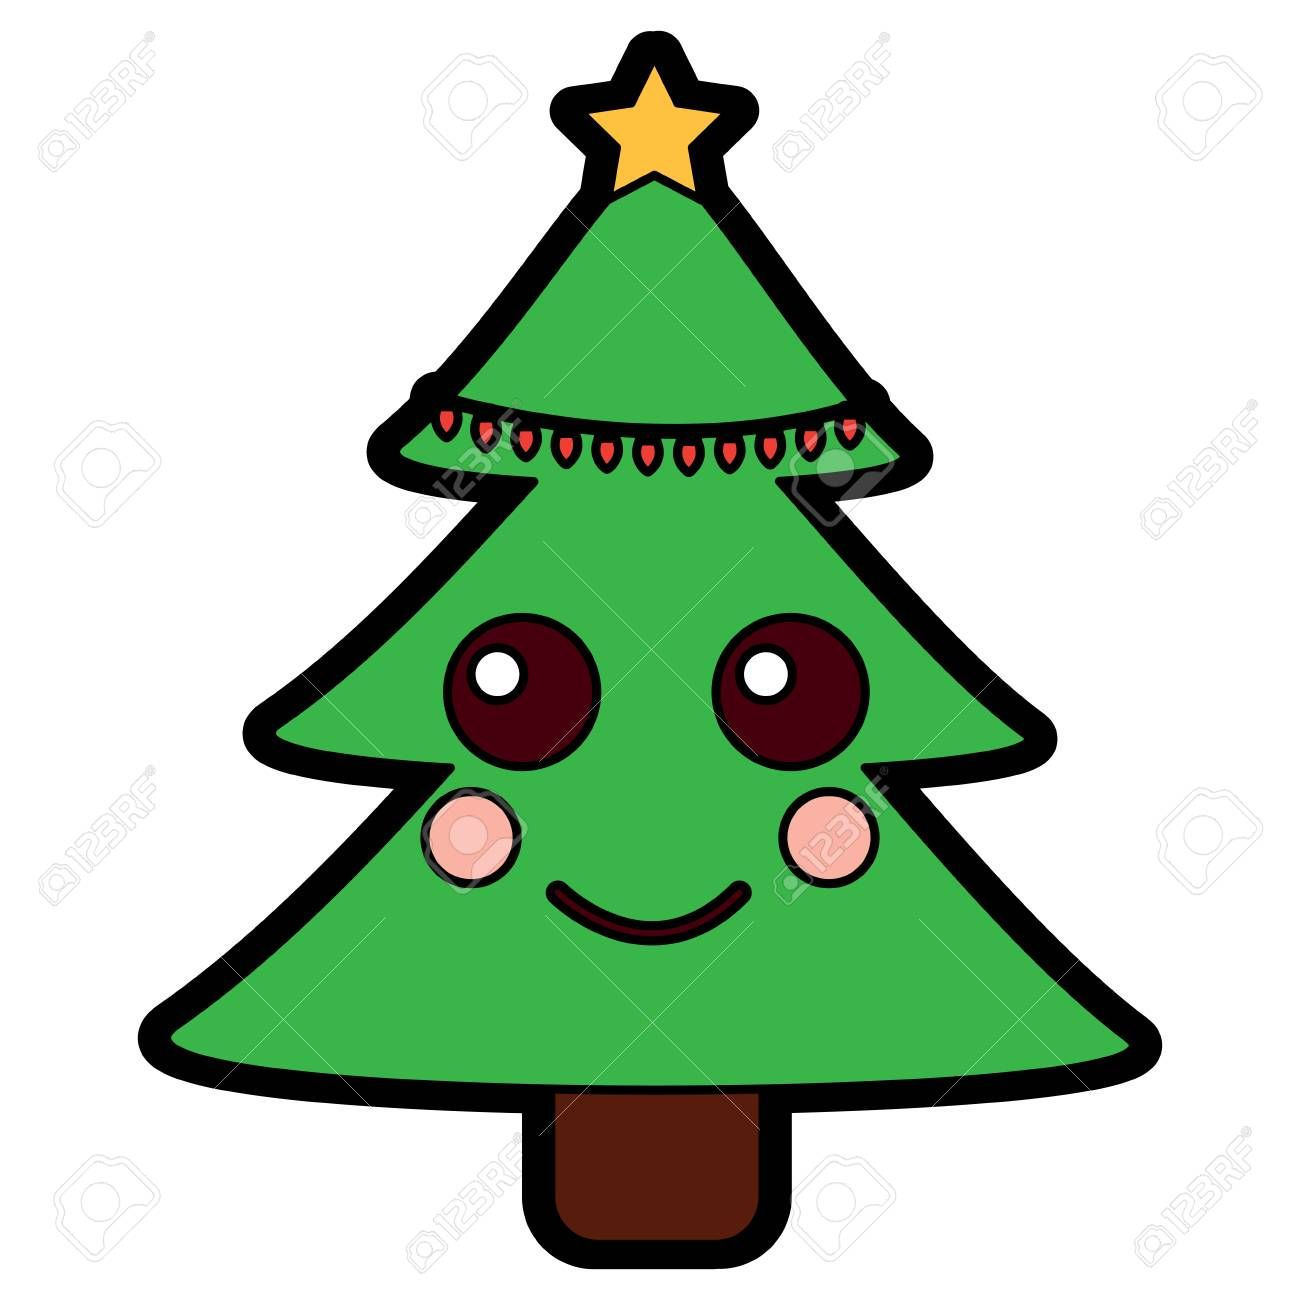 Cartoon Christmas Tree Designs Vector Christmas Tree Design Cartoon Christmas Tree Christmas Graphic Design